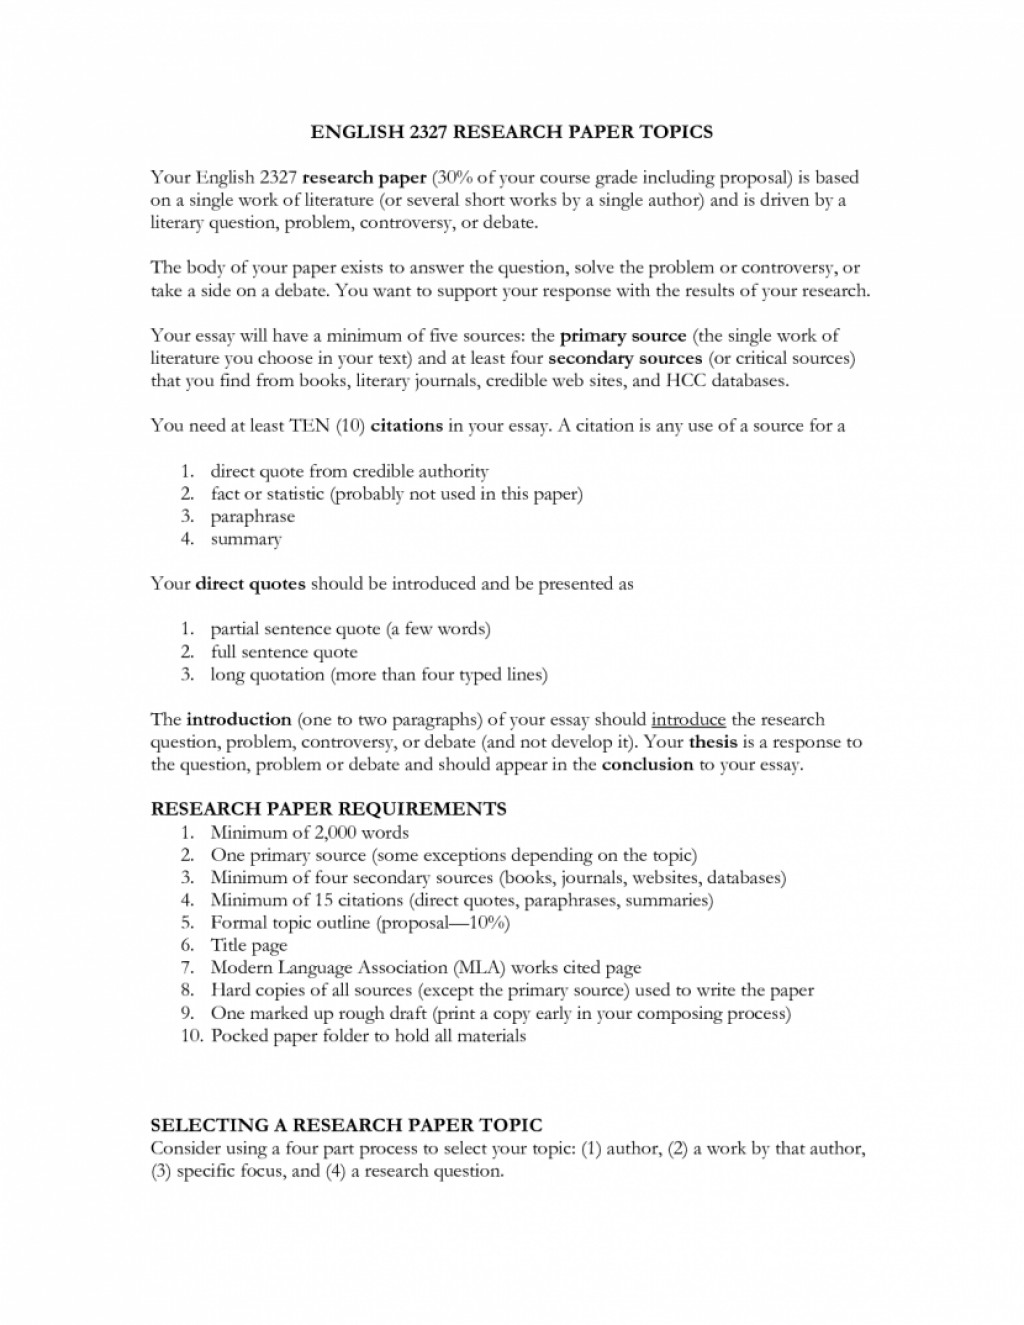 009 Essay Example Exemplification Sample Outline Famouscs High School Examples Of Illustrative Essays For Illustration 7mot6 Fun College Students Good Unusual Topics Unique Question Large